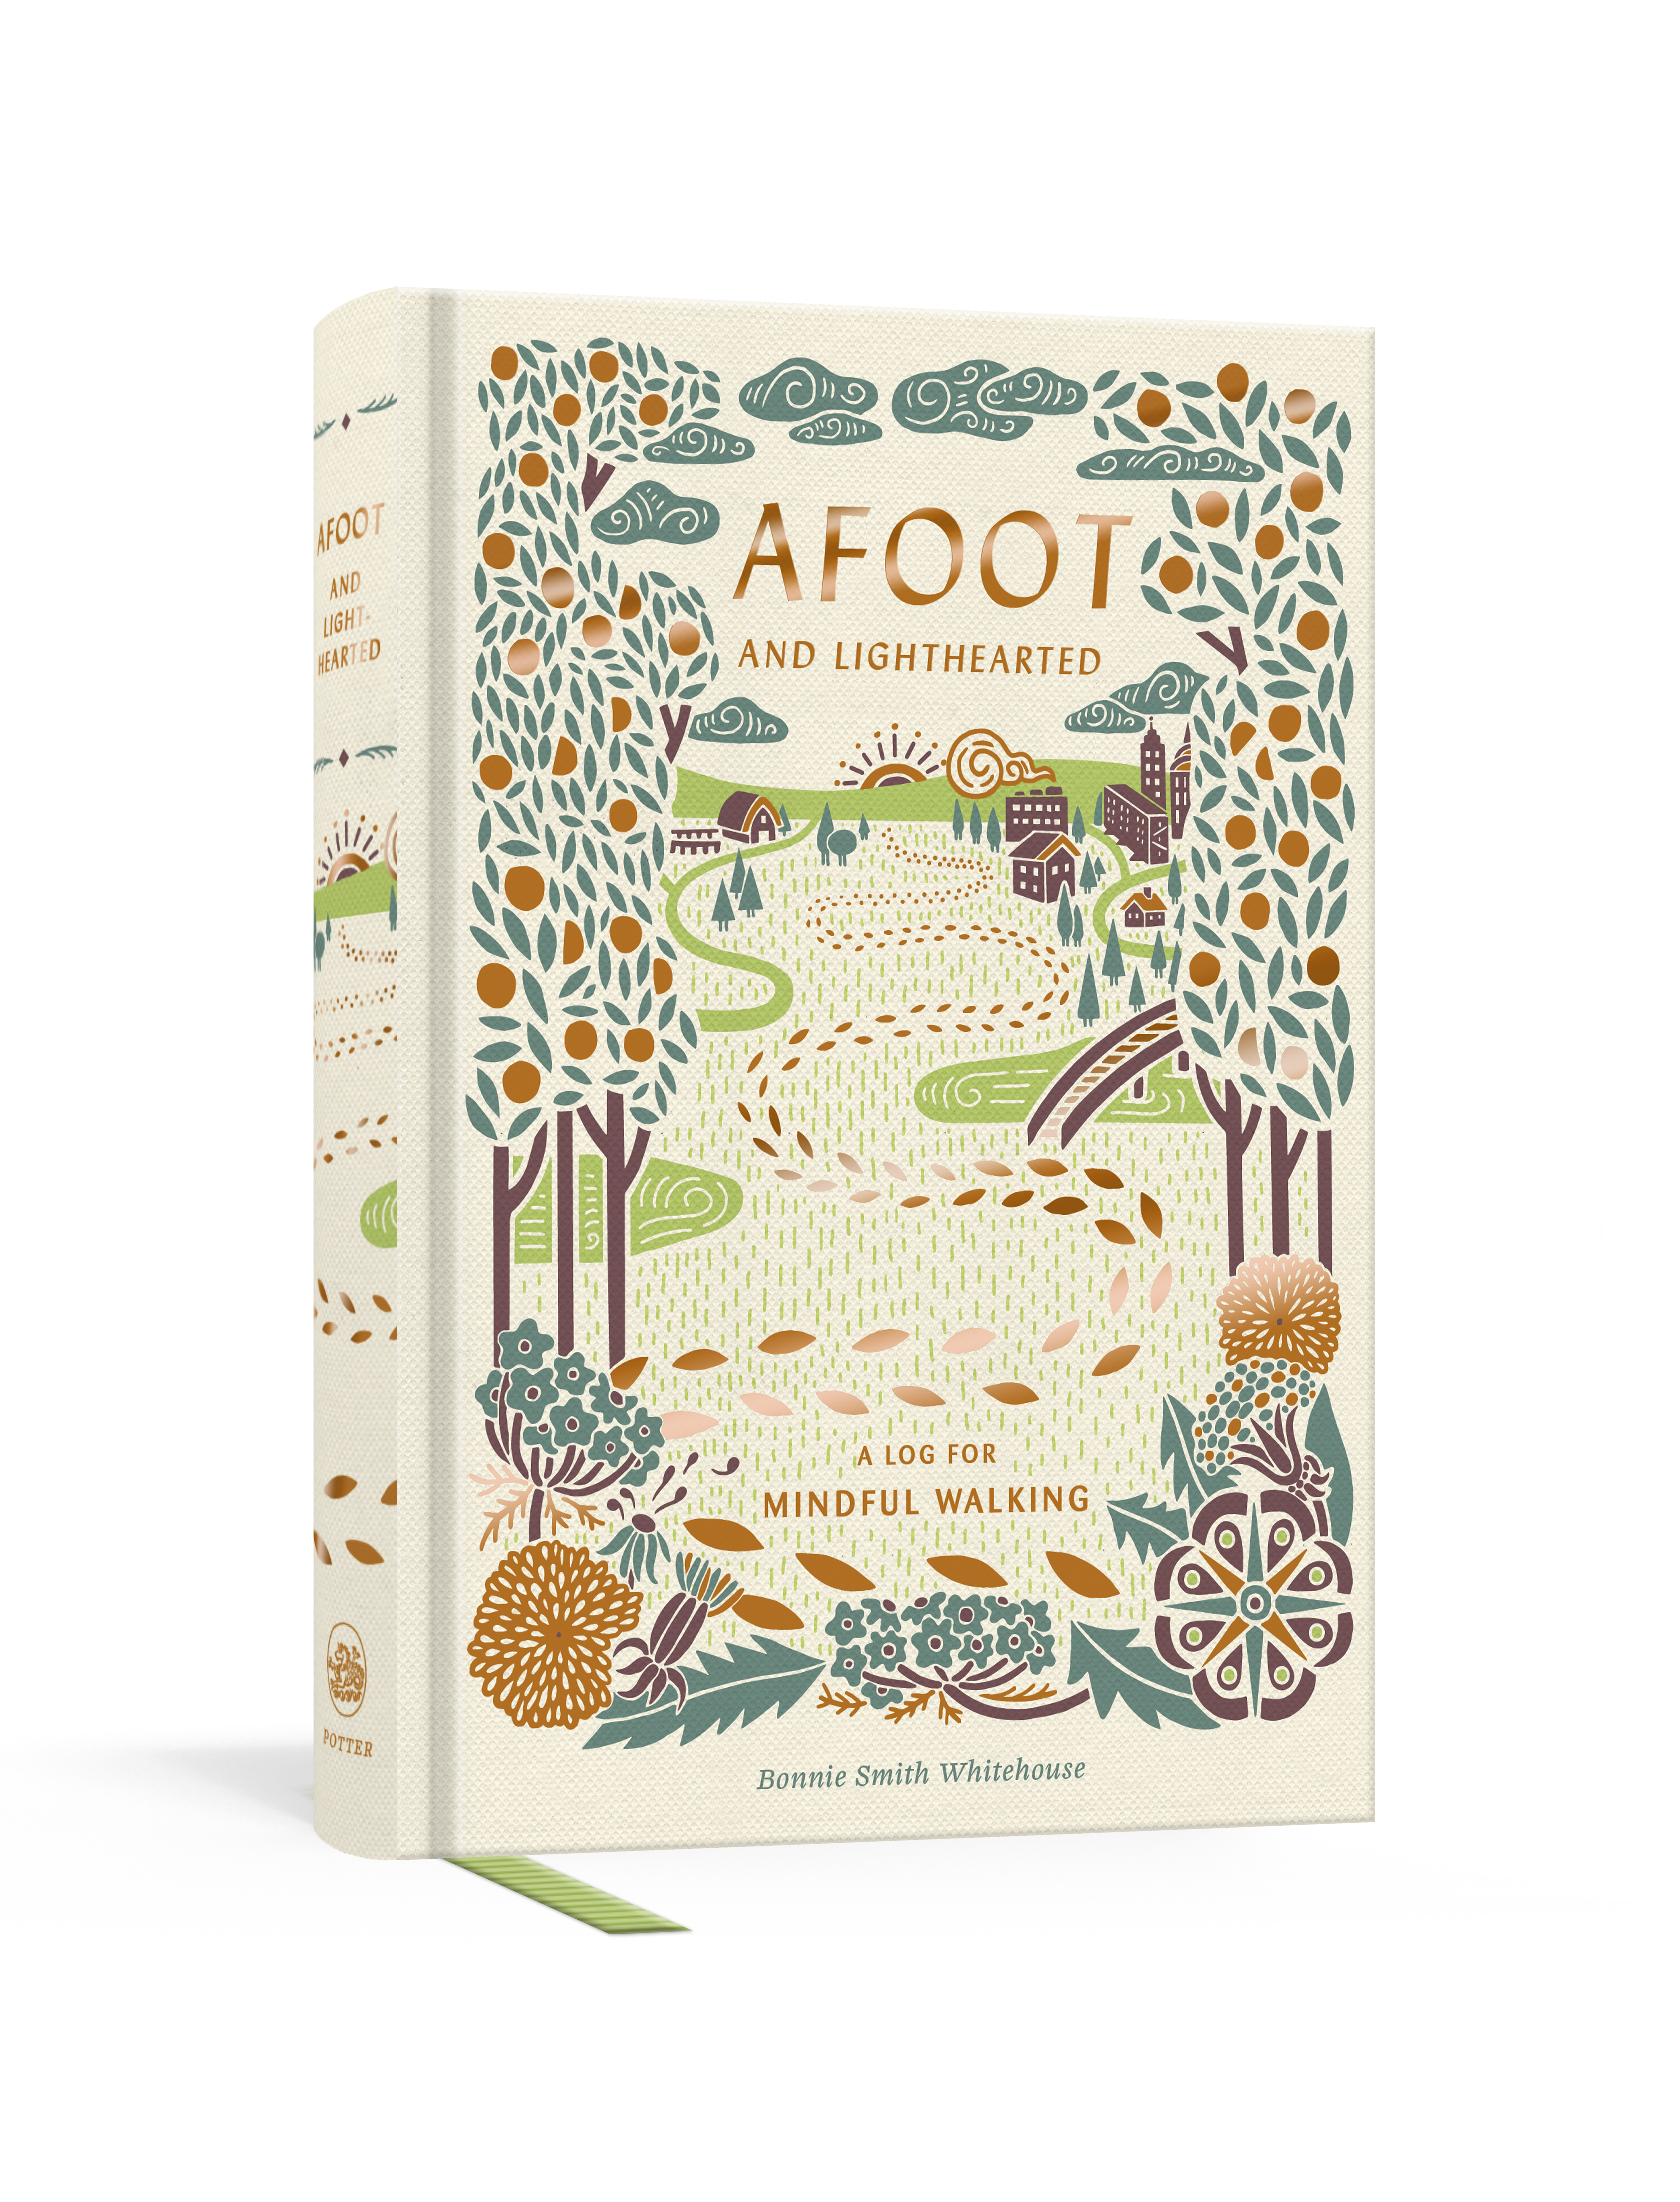 "A guided journal for people seeking new ways to unplug, get active, inspire creativity, cultivate mindfulness, and improve well-being. - Afoot and Lighthearted is the first interactive journal of its kind for walkers who want to expand their physical and creative worlds through acts of mindfulness. Afoot and Lighthearted will teach readers how to harness the power of walking to cultivate and nourish attention, inspiration, and determination, as well as to combat distraction, anxiety, and the dreaded creative block. Organized around thematic prompts designed to help makers take a break from digital life and tap into the transformational magic of creative journaling, Afoot and Lighthearted introduces us to innovative walkers throughout literature, art, philosophy, and history, and it offers encouragement in the form of inspirational quotes. Supported by light illustrations and evidence from recent research on the compelling connection between walking and well-being, Afoot and Lighthearted offers a fresh perspective every step of the way, much like a walk itself.Pick up a copy today at your favorite independent bookstore! Mine happens to be Parnassus Books in Nashville, Tennessee.Afoot and Lighthearted is also available at Amazon, Barnes and Noble, Target, and Walmart.""This Latin Phrase Will Change the Way You Manage Problems."" A review from Quartzy""To Take Feet to Ground."" A review from Chapter 16""Books for Mom."" Nashville Lifestyles""How to Make Your Midday Walk a More Mindful Experience, from a 'Walking Professor'"" MindBodyGreen""Inspiring (and Useful!) Gifts for Writers"" Parnassus Musing"